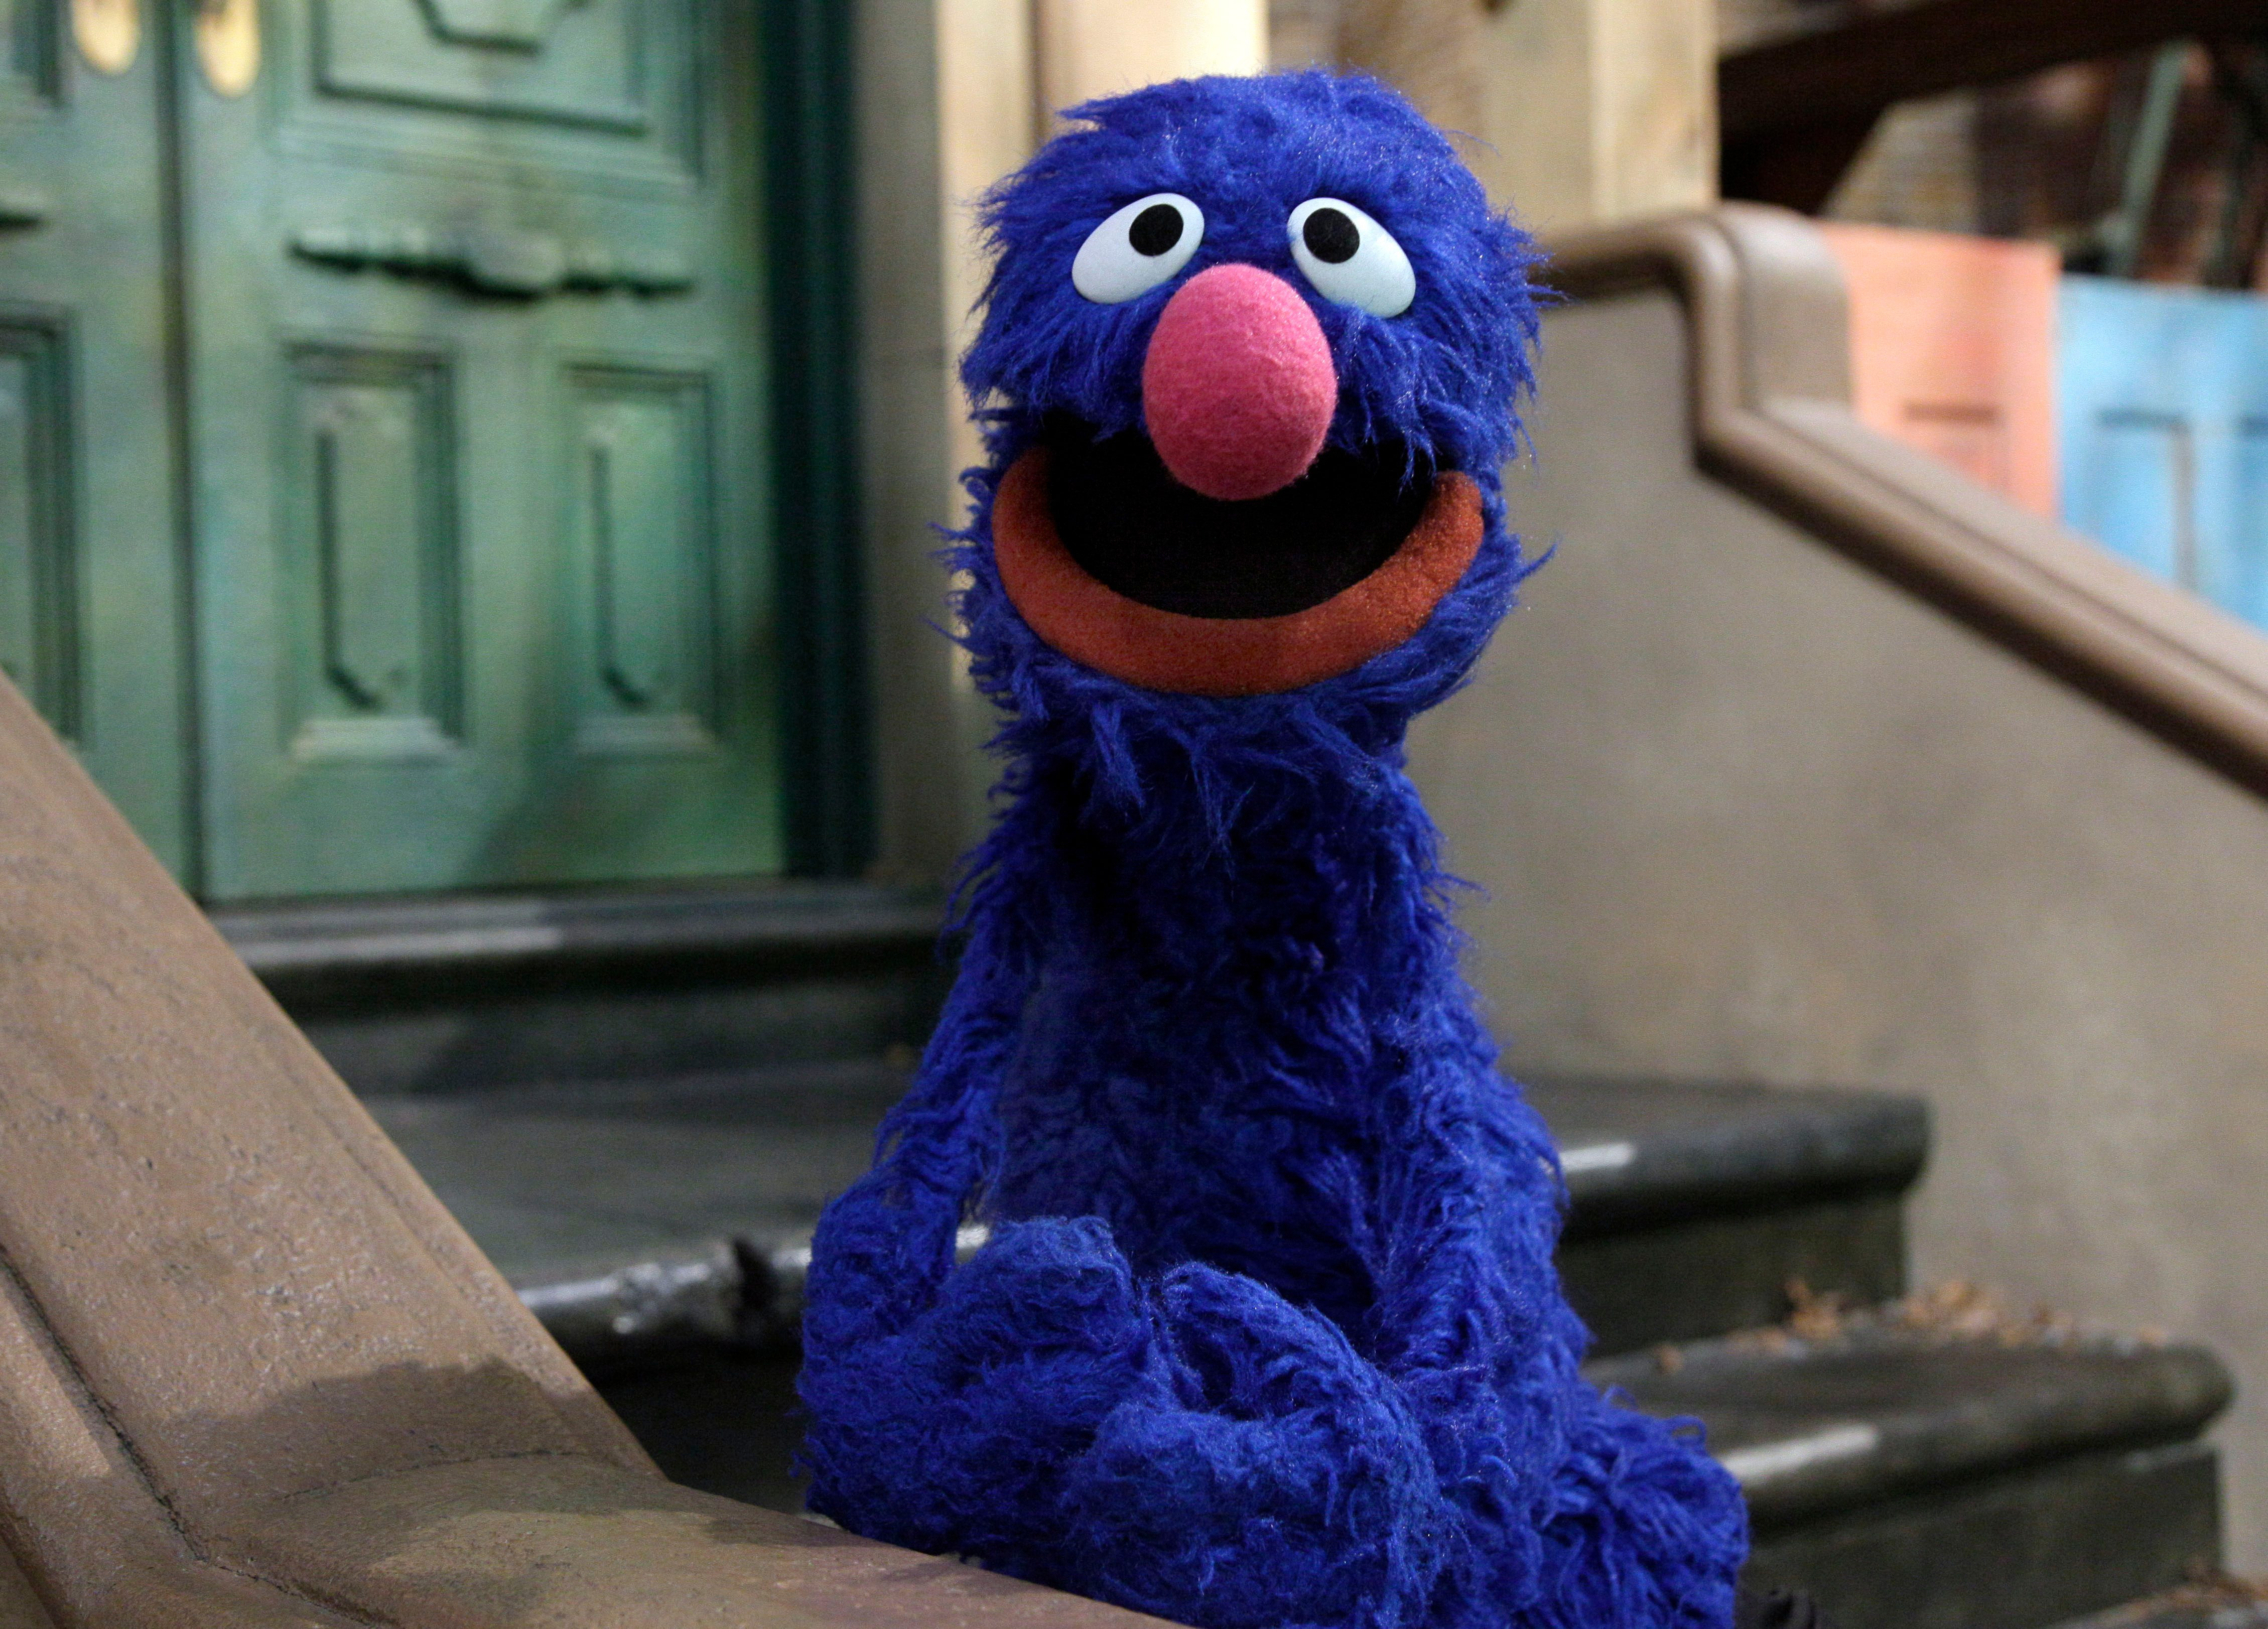 """Mandatory Credit: Photo by Richard Drew/AP/Shutterstock (6287109a) Grover Grover is posed on the set of """"Sesame Street,"""" in New York. Earning money is one of the financial fundamentals that is part of """"For Me, For You, For Later,"""" a new project featuring Grover, Elmo, Cookie Monster and their Muppet pals Family Finance Sesame Street, New York, USA"""